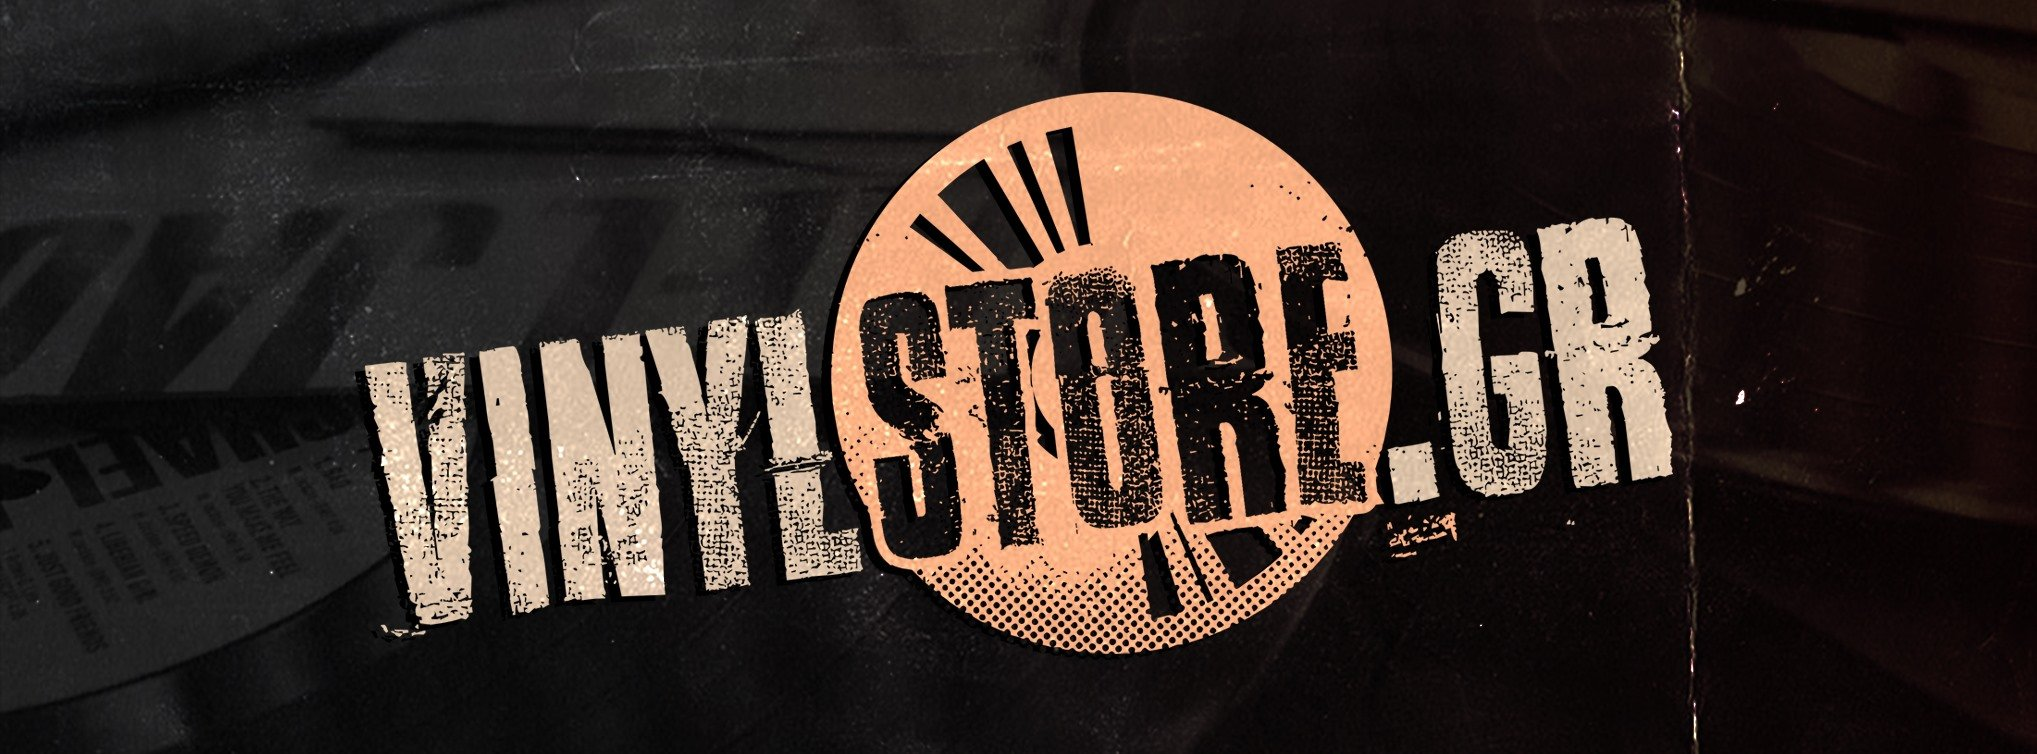 THE GALLERY Contest: VINYLSTORE.GR (06/05/2020)